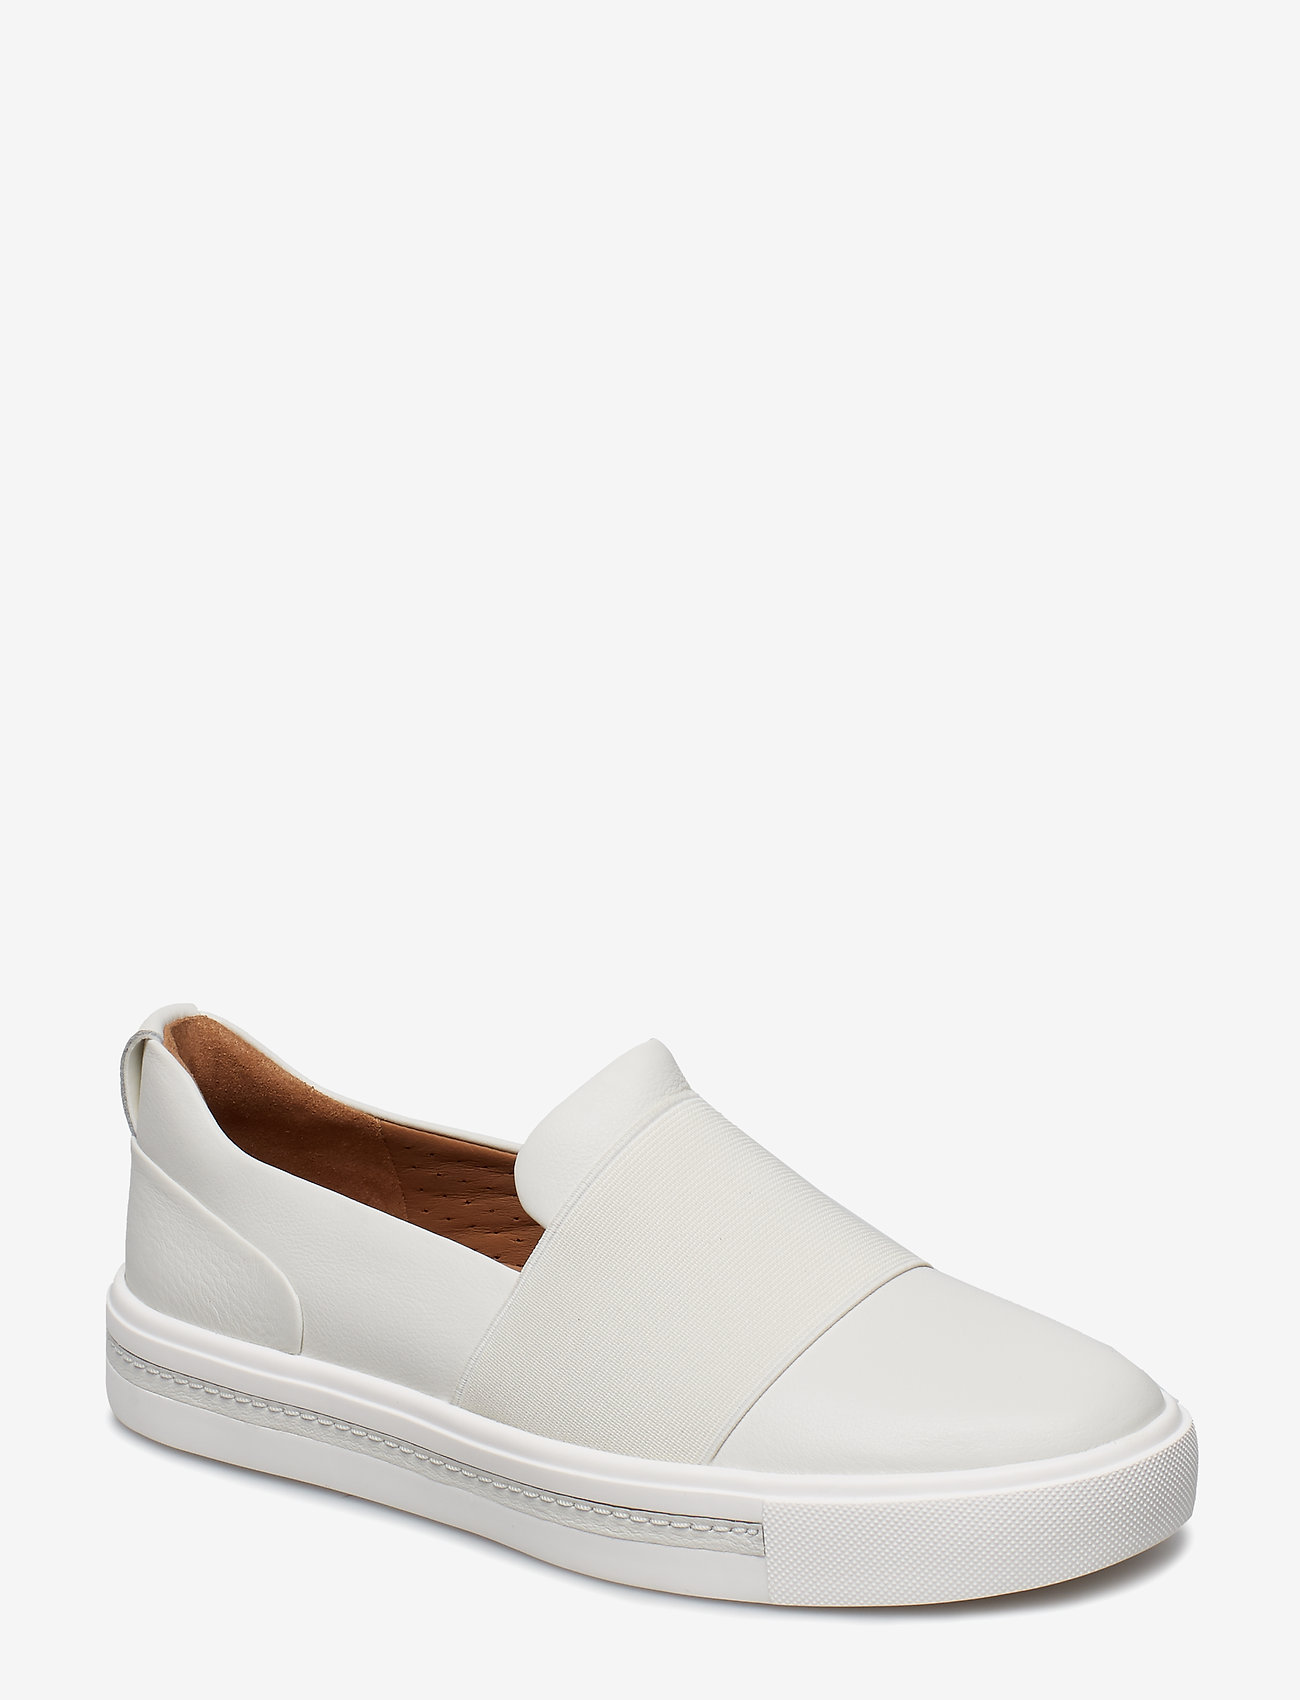 Clarks - Un Maui Step - slip-on sneakers - white leather - 0